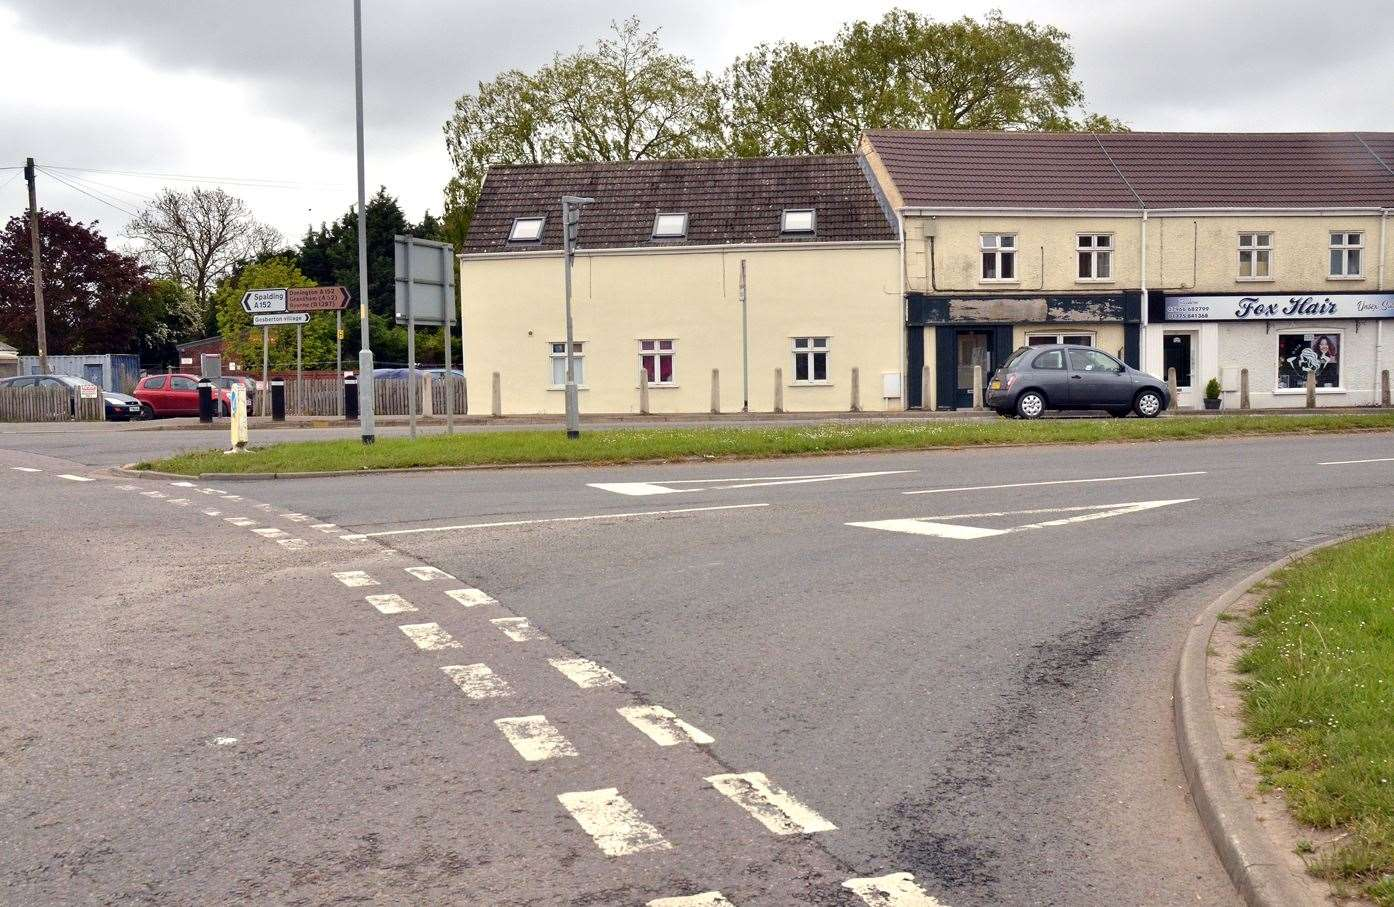 Painted Give Way lines are faded at a dangerous junction in Gosberton.